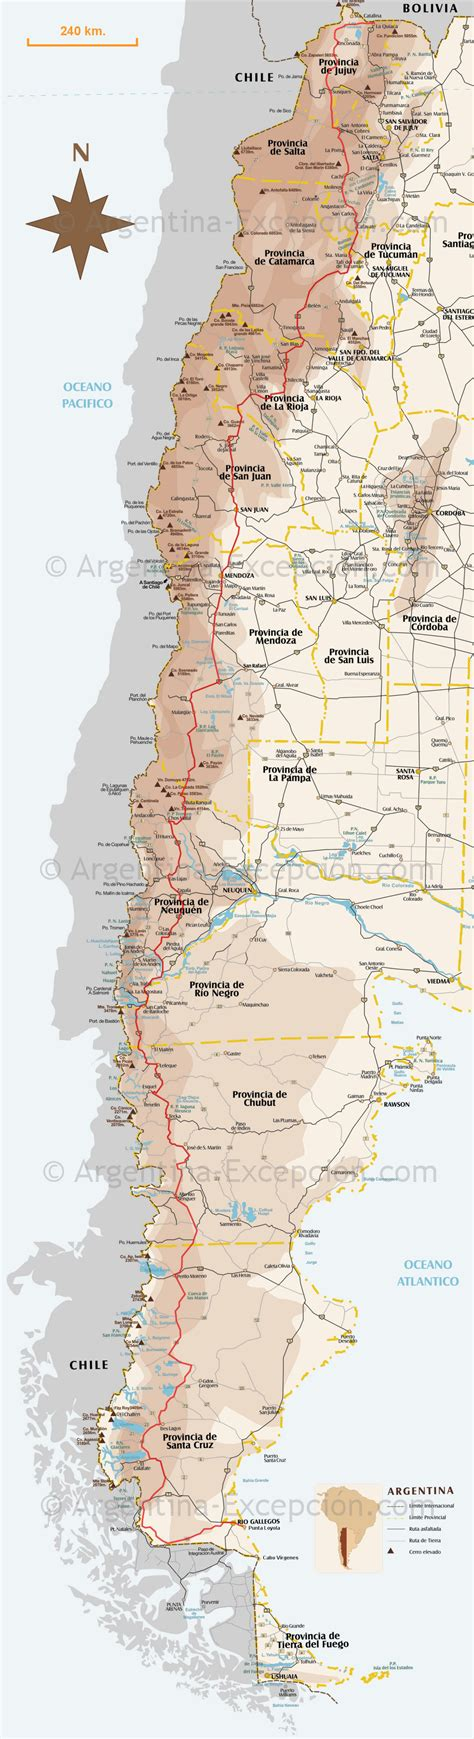 Map Route 40, Argentina